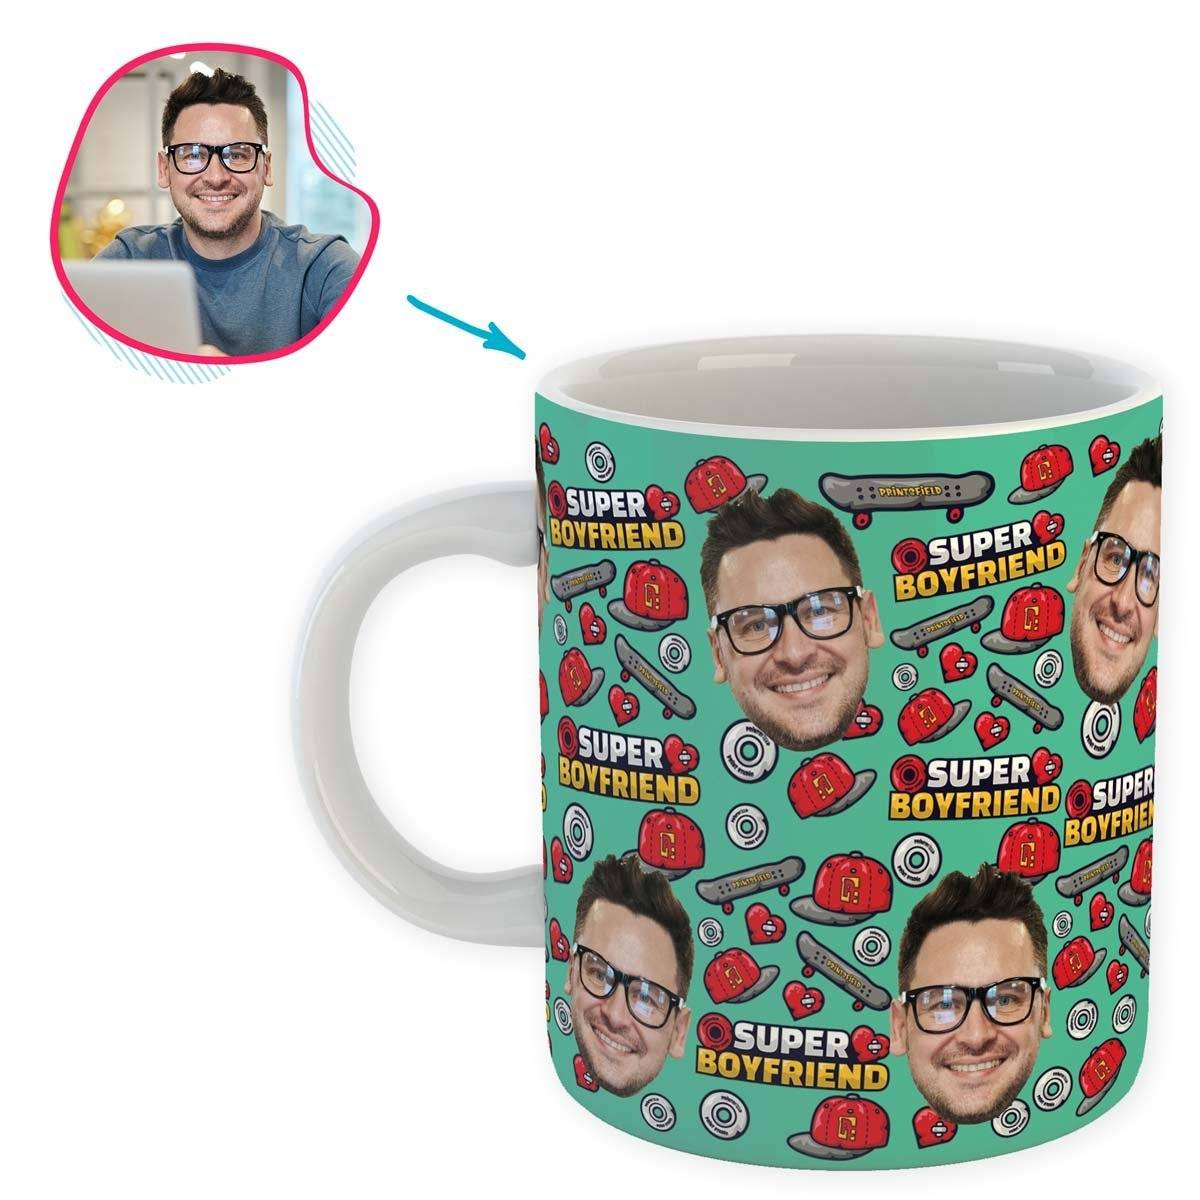 Mint Boyfriend personalized mug with photo of face printed on it